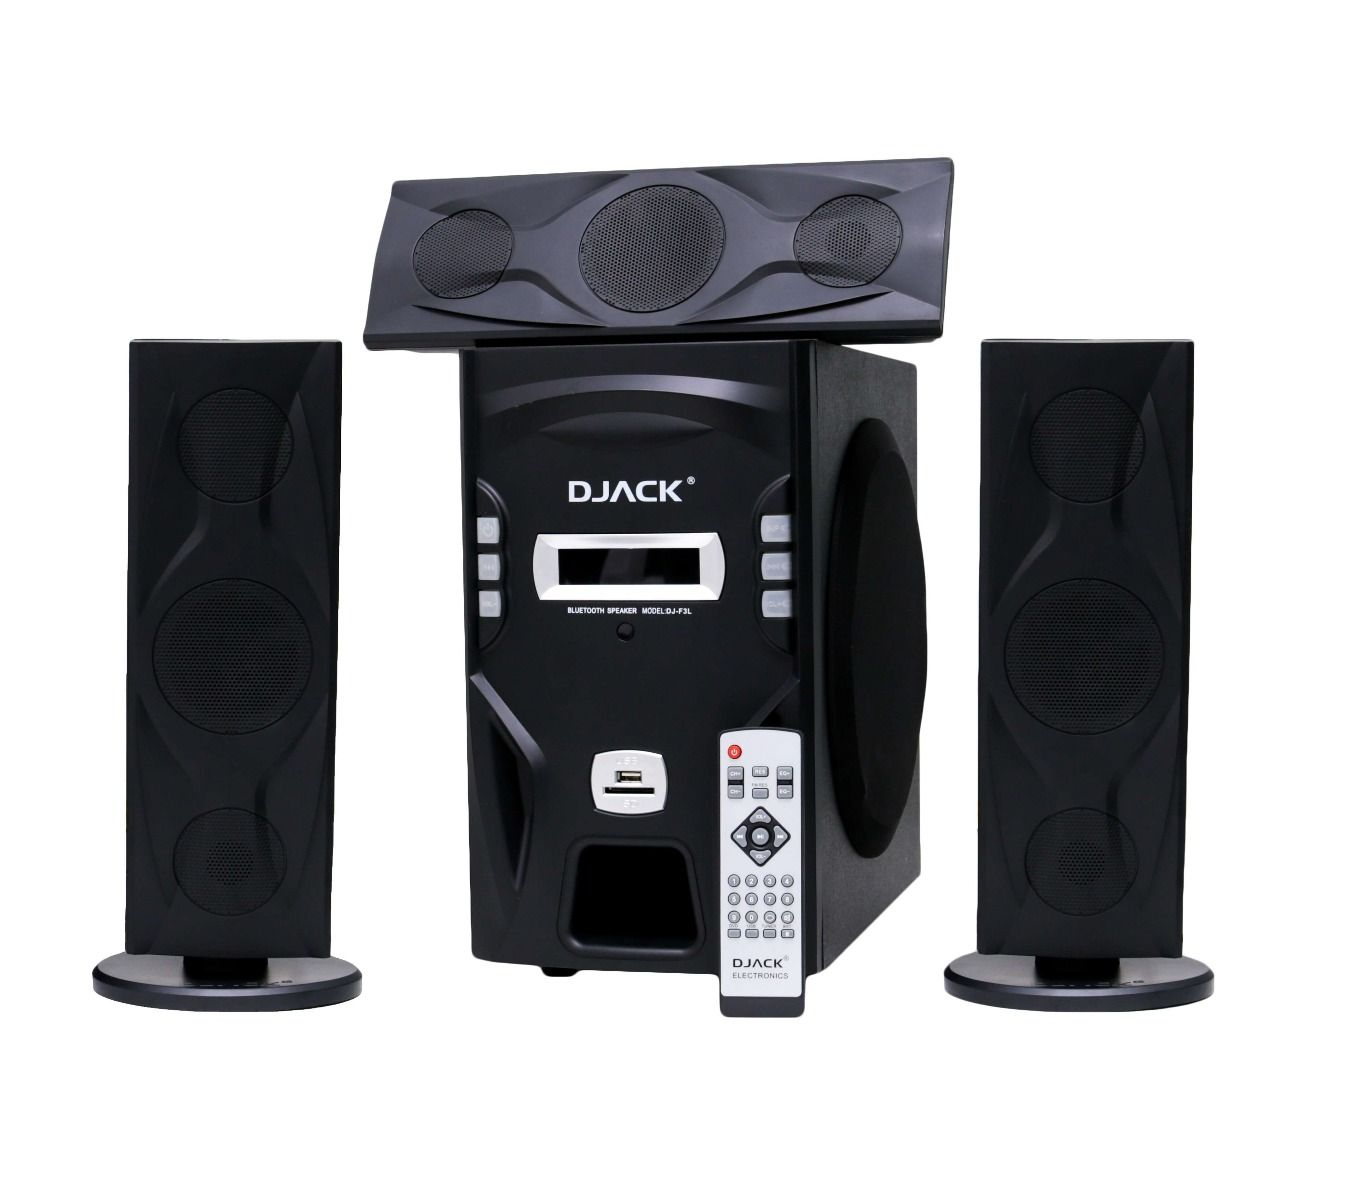 DJACK 3.1 X-Bass Hi-Fi Multimedia Speaker System - DJ-T3L